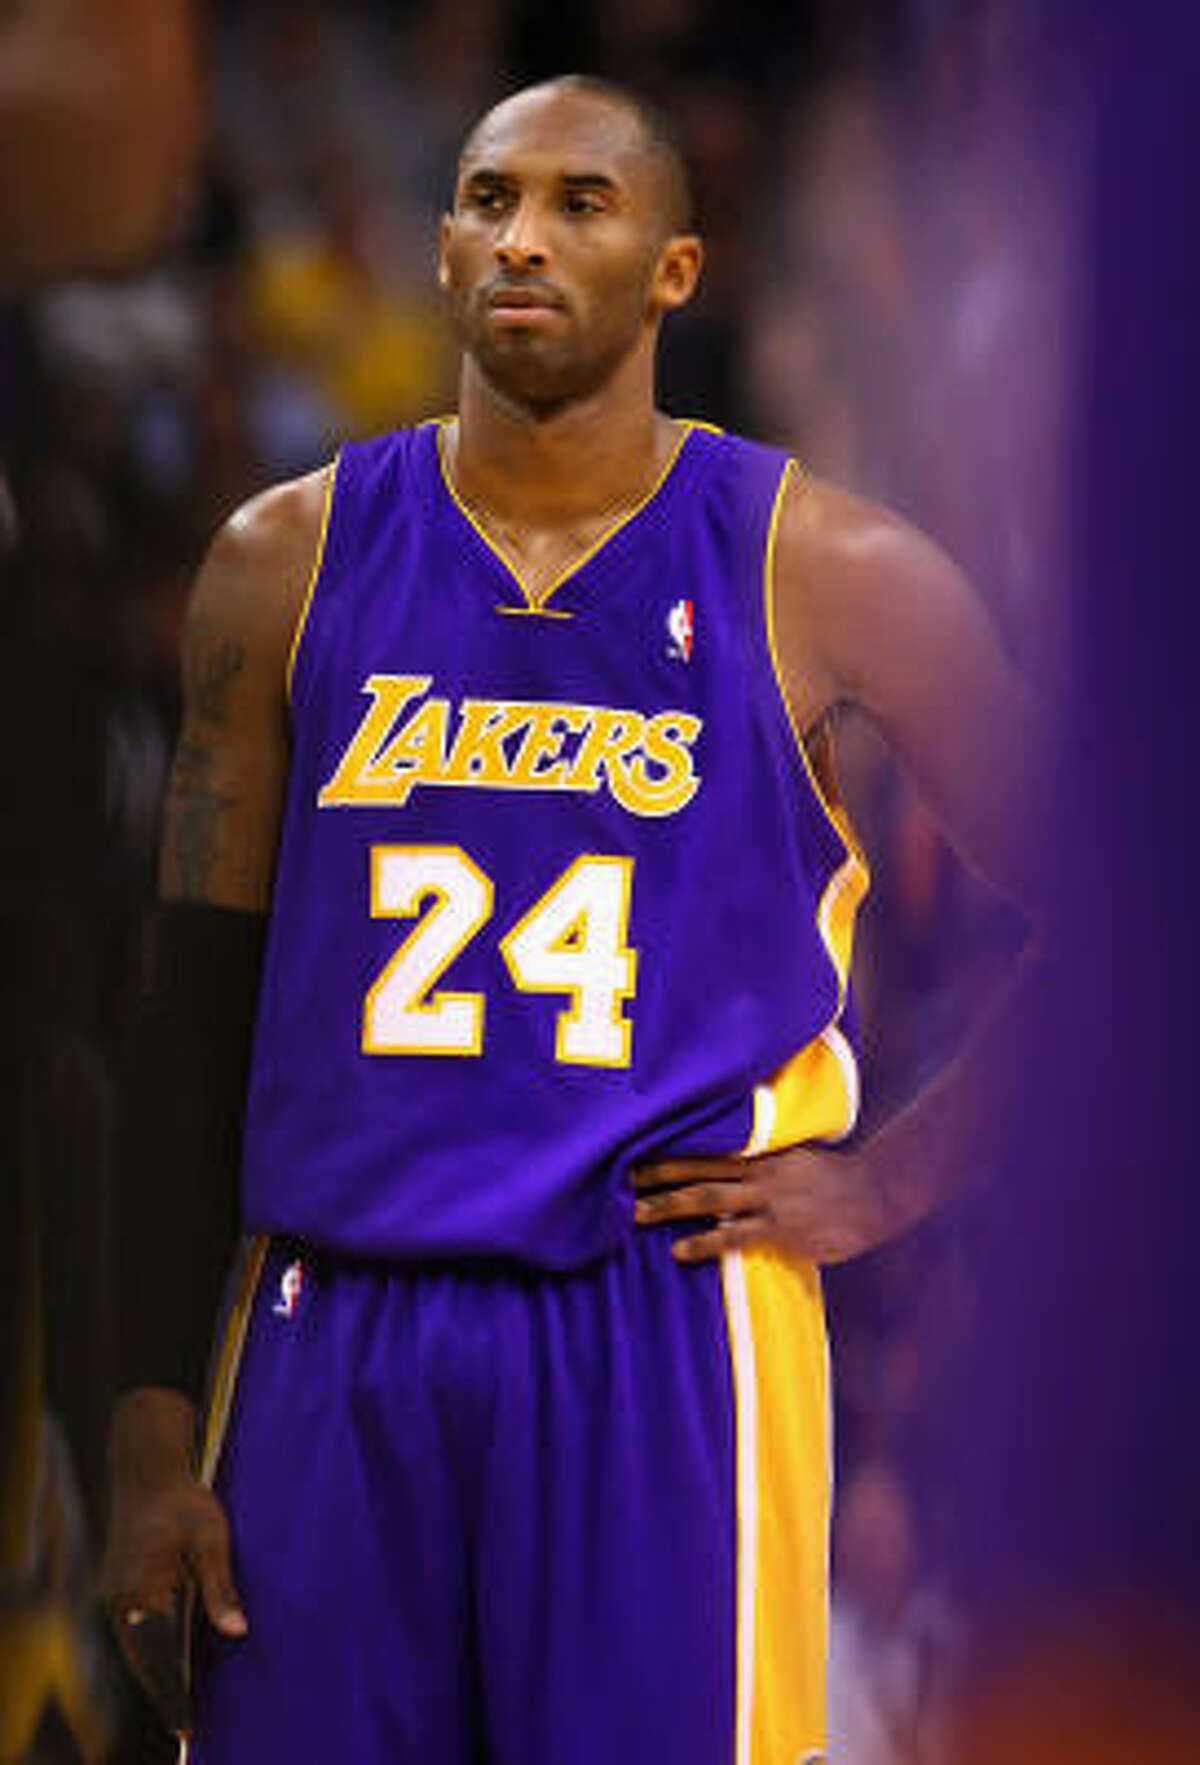 Dec. 1 Kobe Bryant and the Los Angeles Lakers.